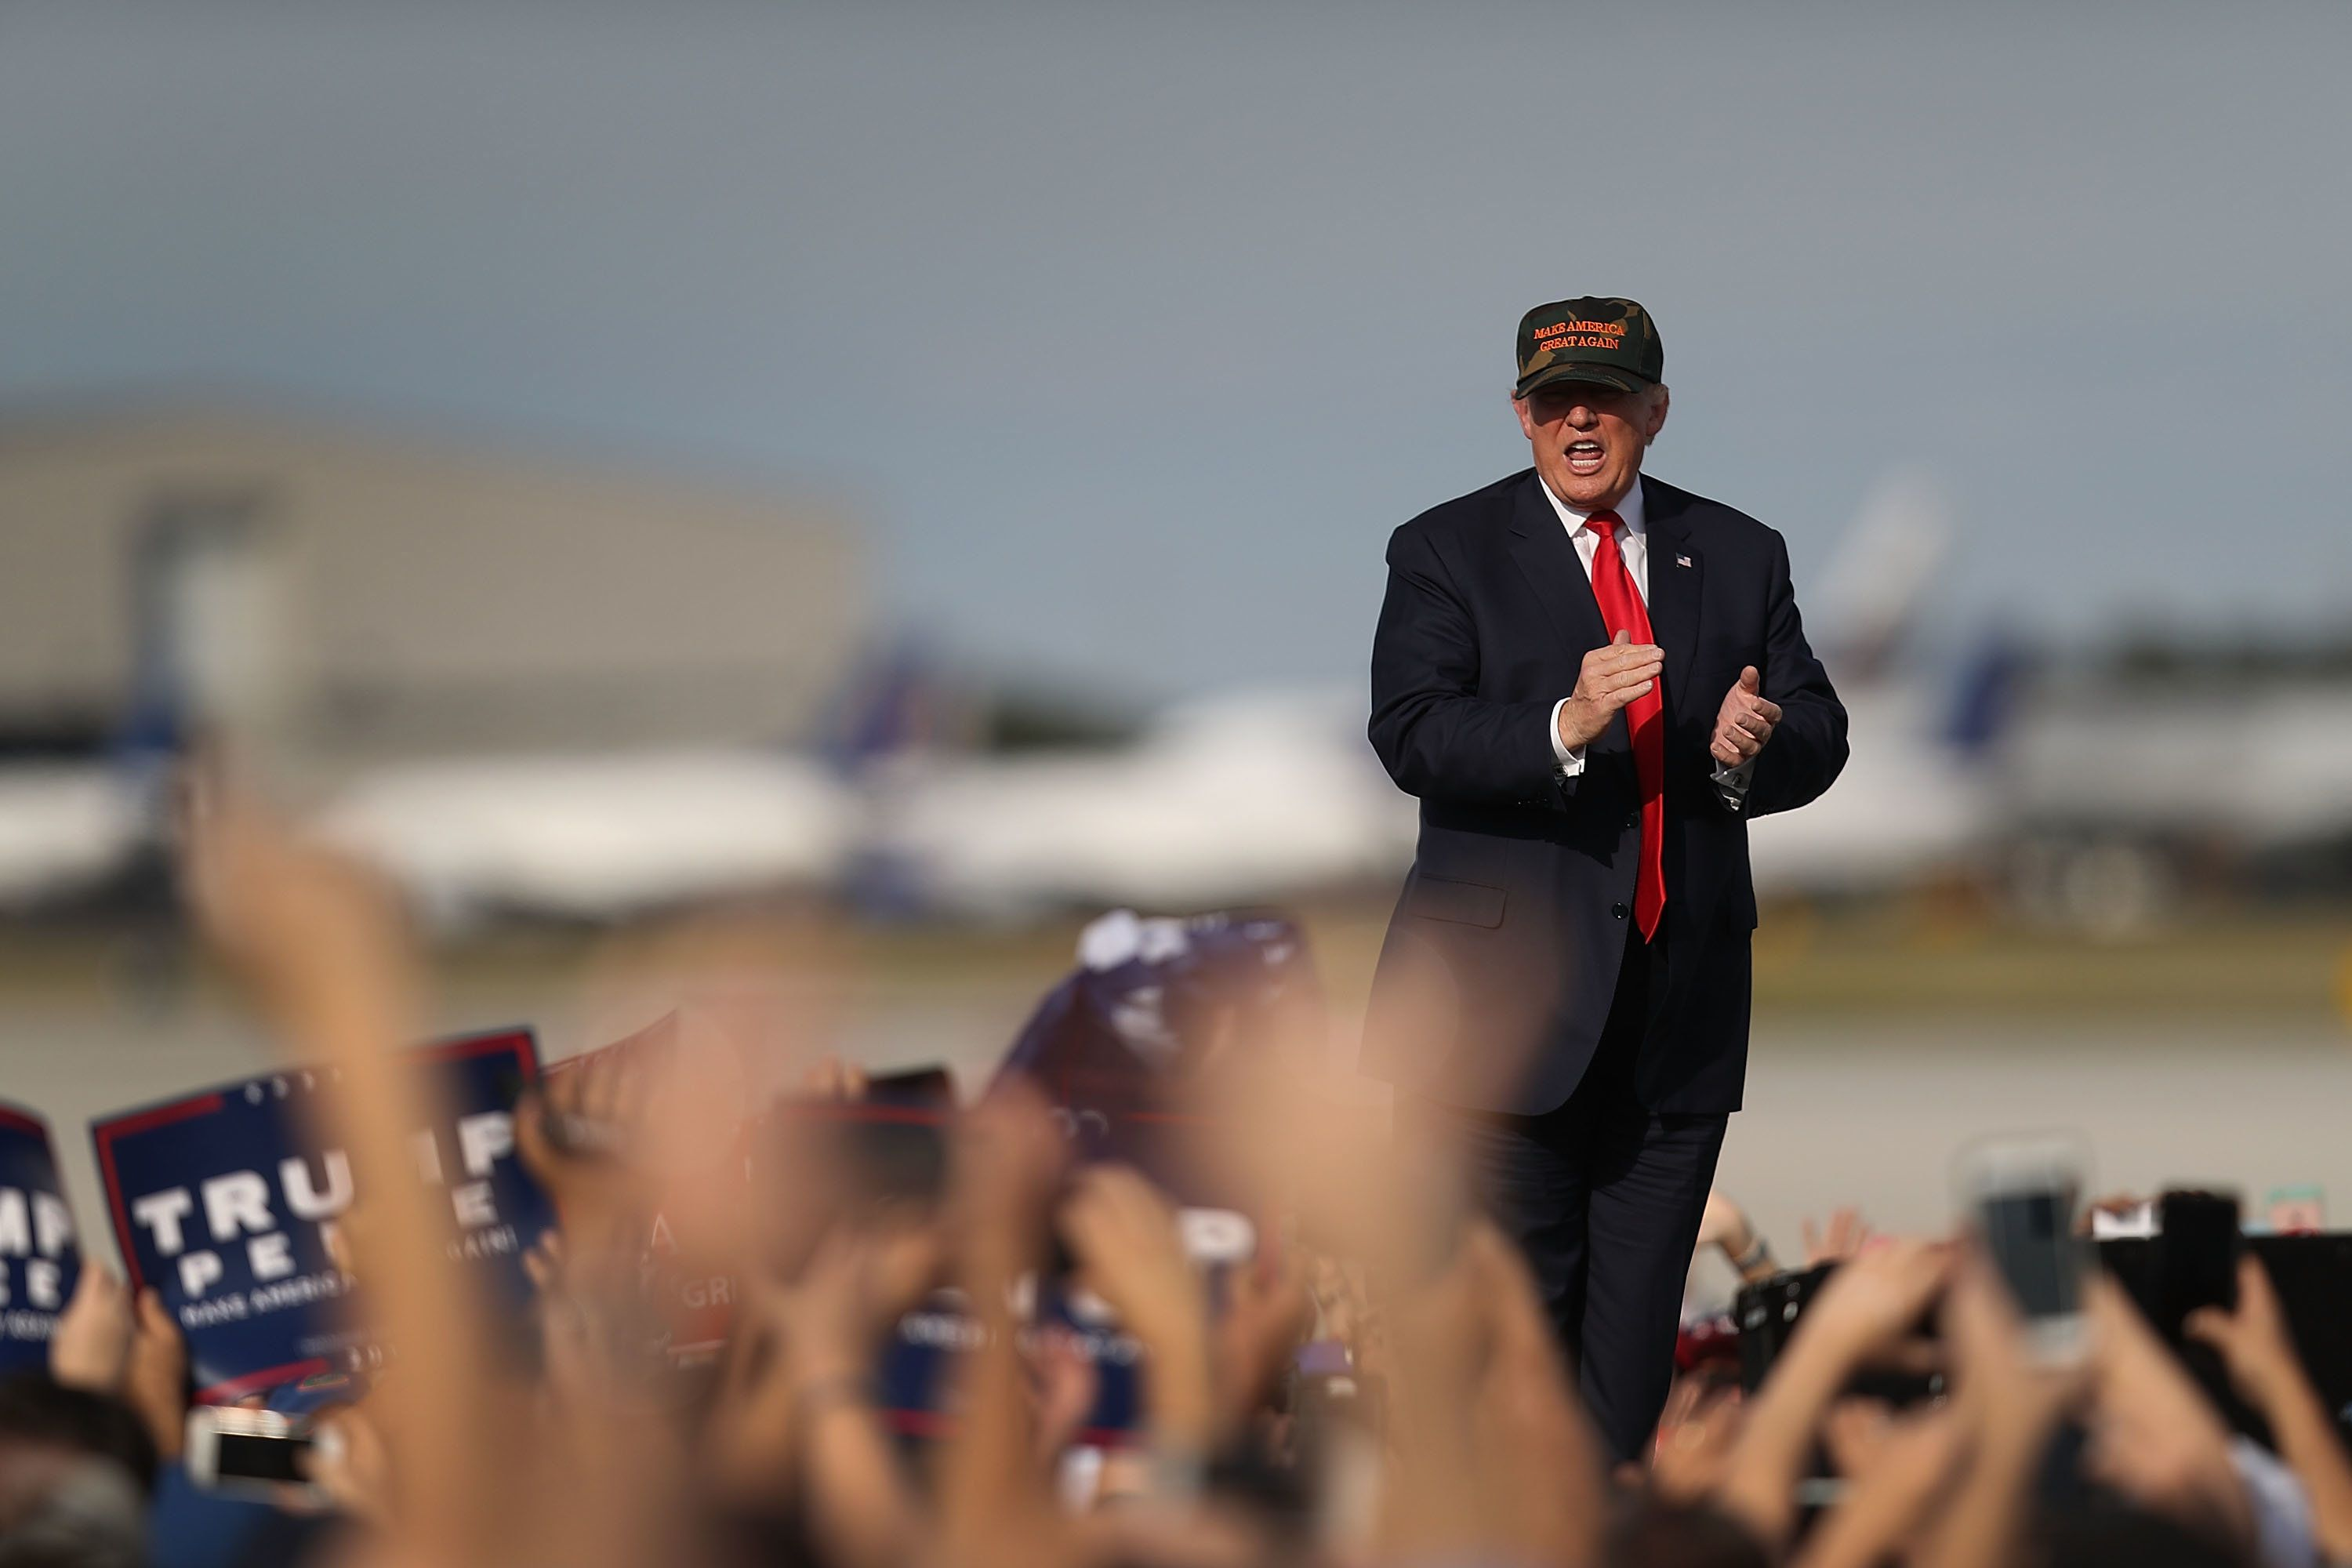 Donald Trump Thought Bringing Women Into The Military Created